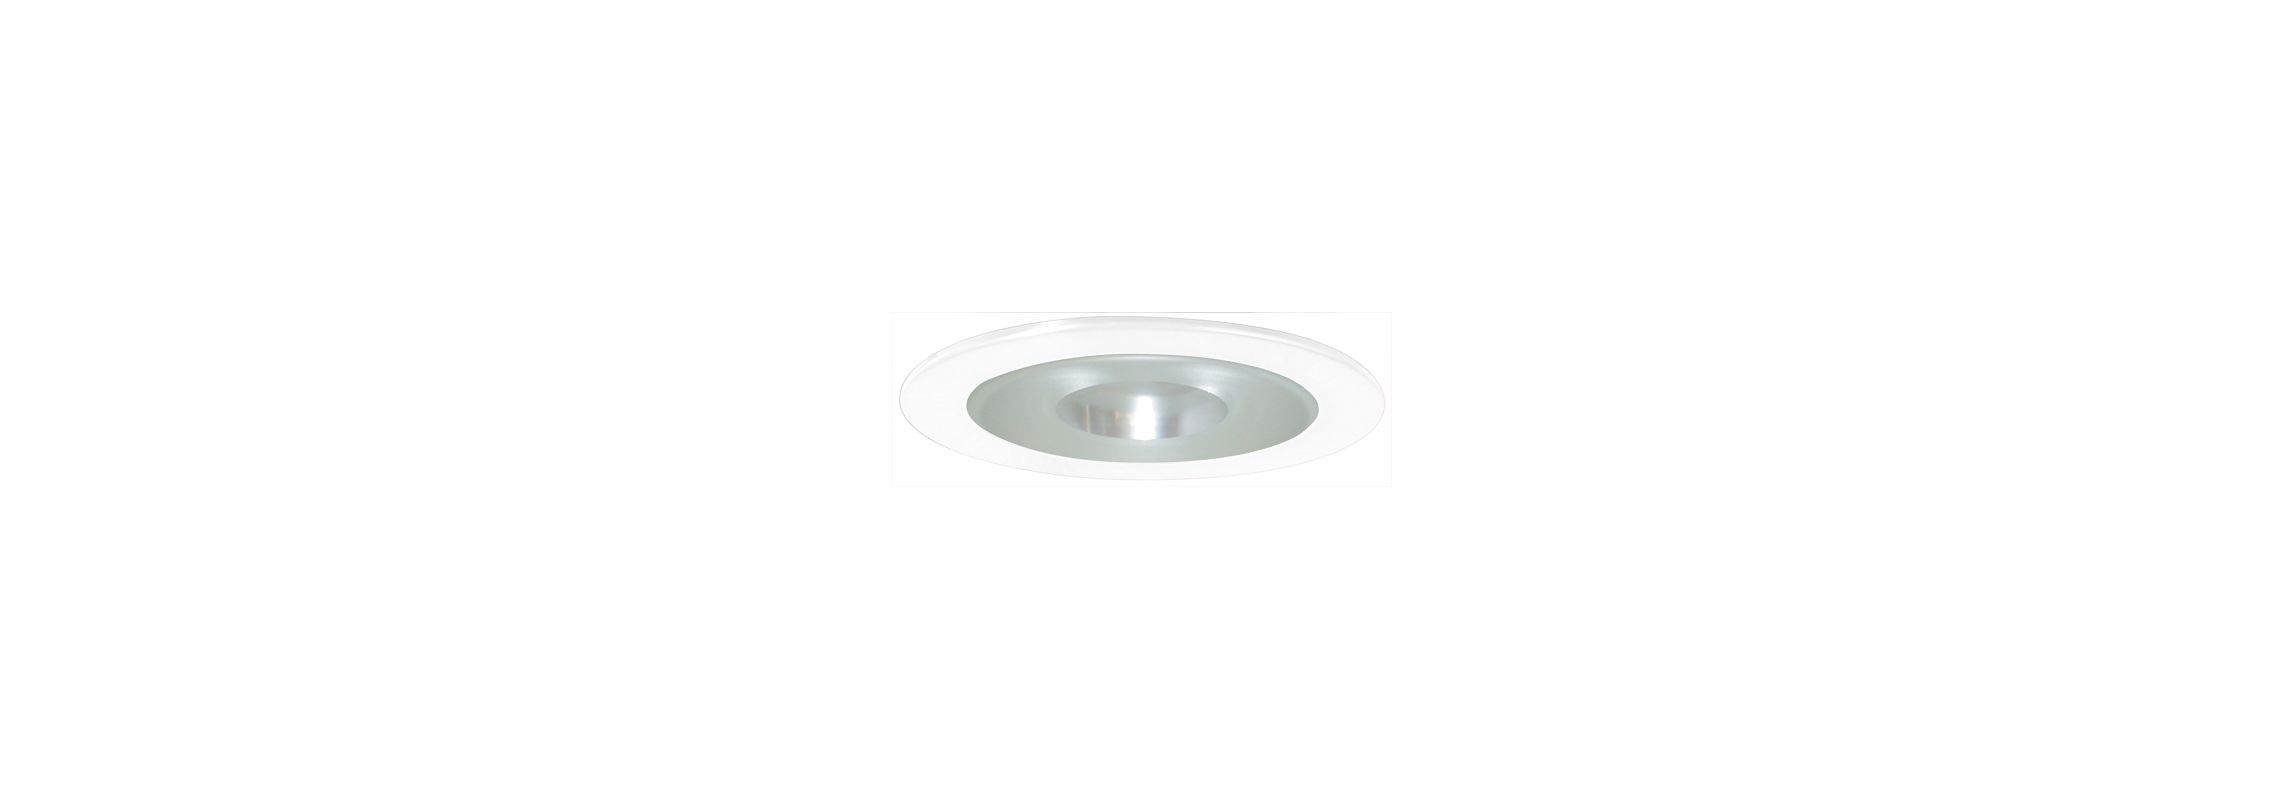 "Elco EL9115SH 4"" White Lexan Shower Trim with Albalite Lens and"